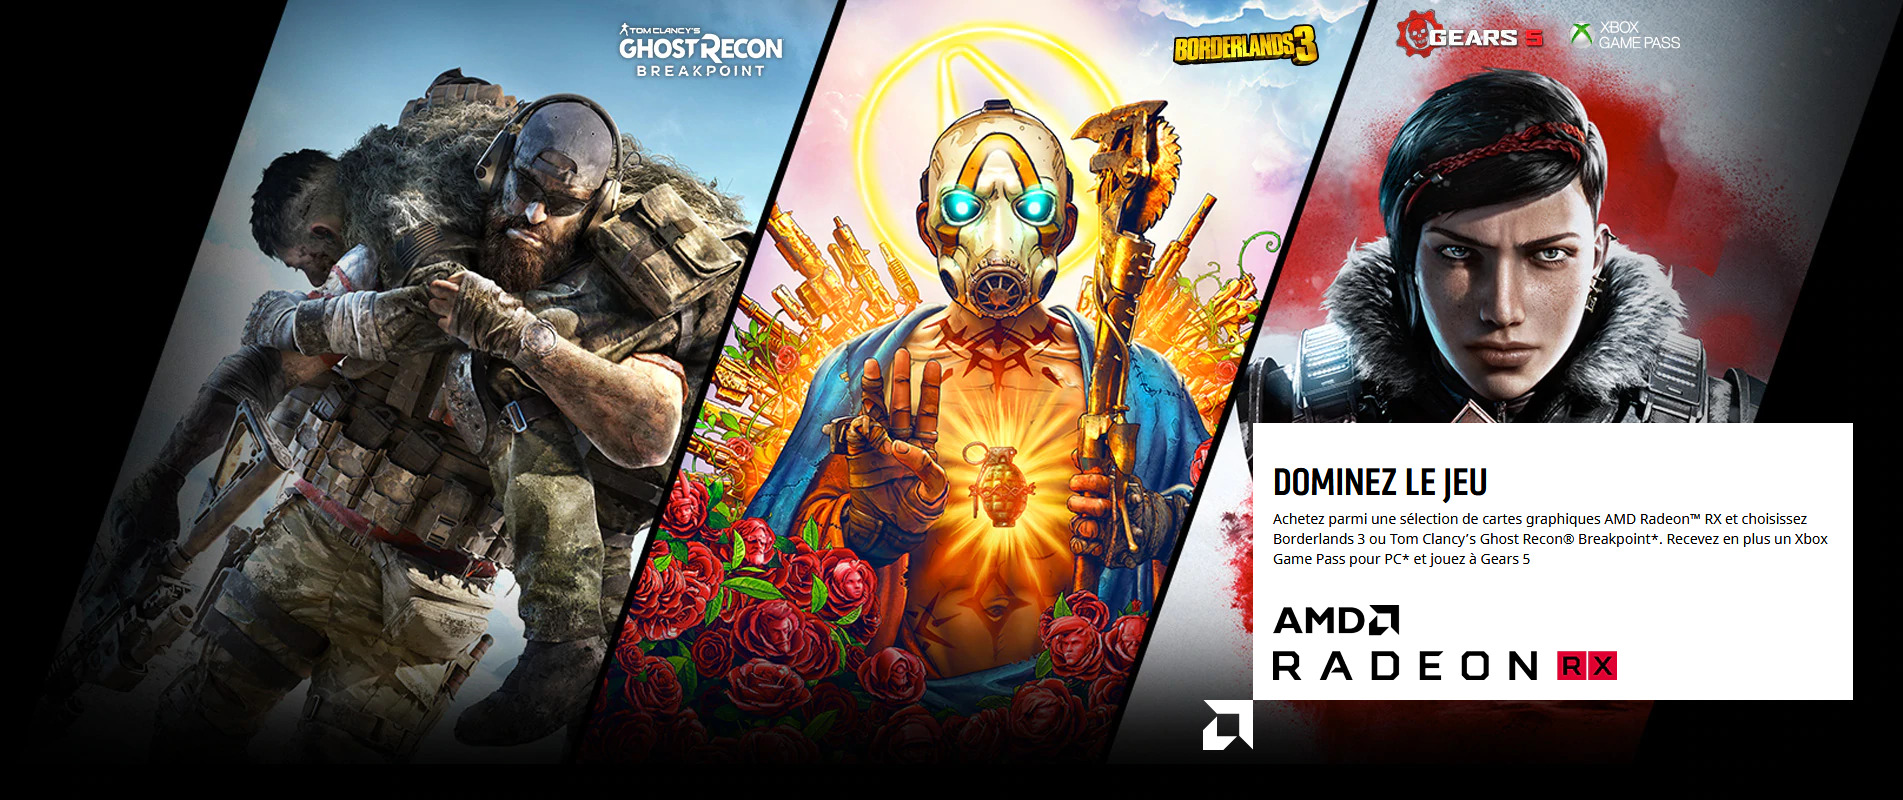 Image 1 : Bundle : AMD offre Borderlands 3, Outer Worlds et Ghost Recon : Breakpoint